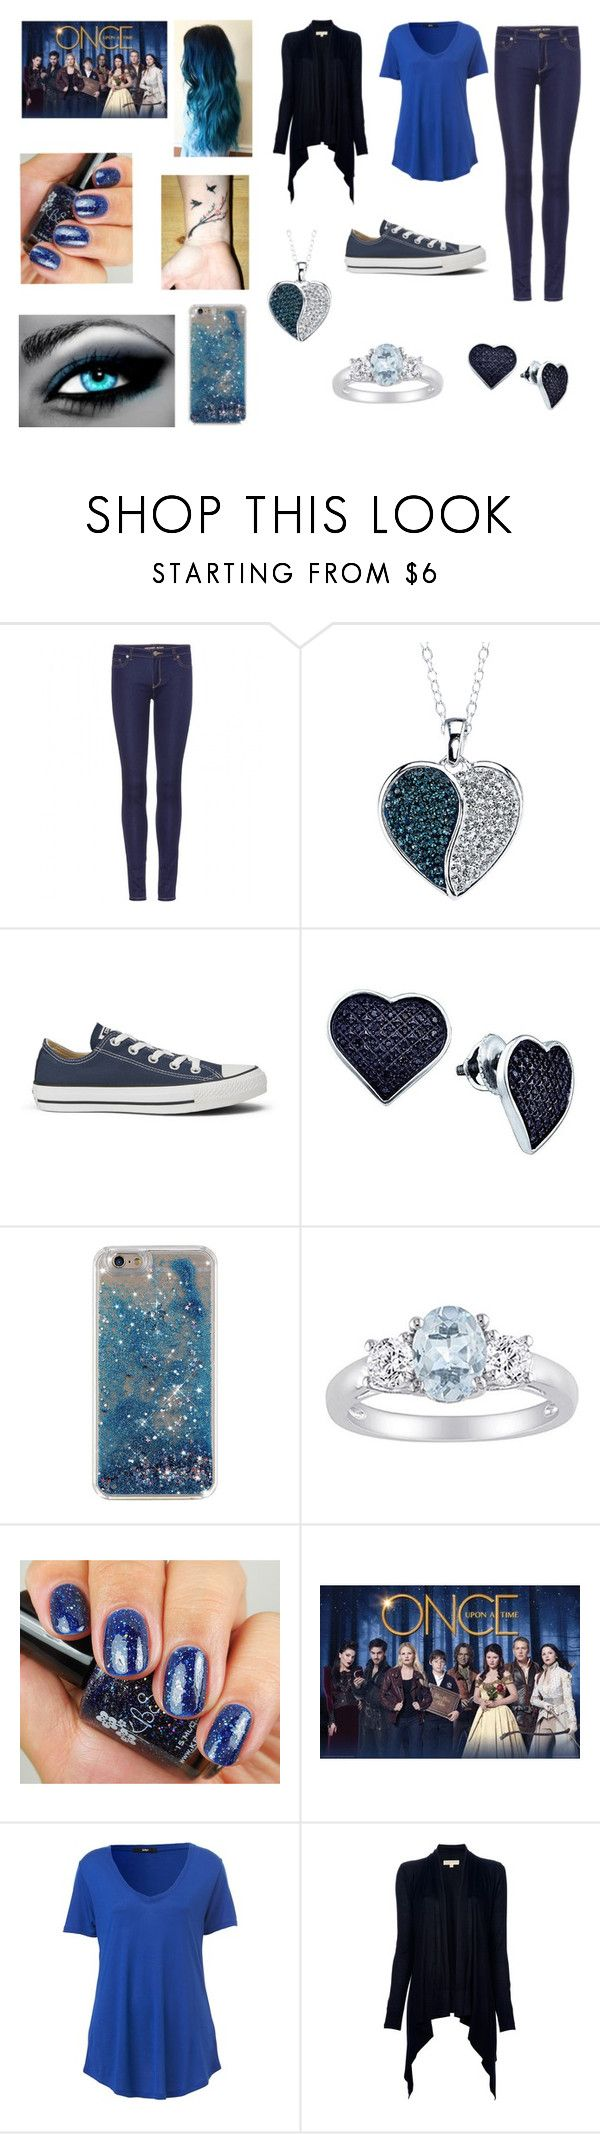 """Cinderella's duaghter"" by fallen-326 on Polyvore featuring MICHAEL Michael Kors, Crystal Sophistication, Converse, BillyTheTree and Once Upon a Time"